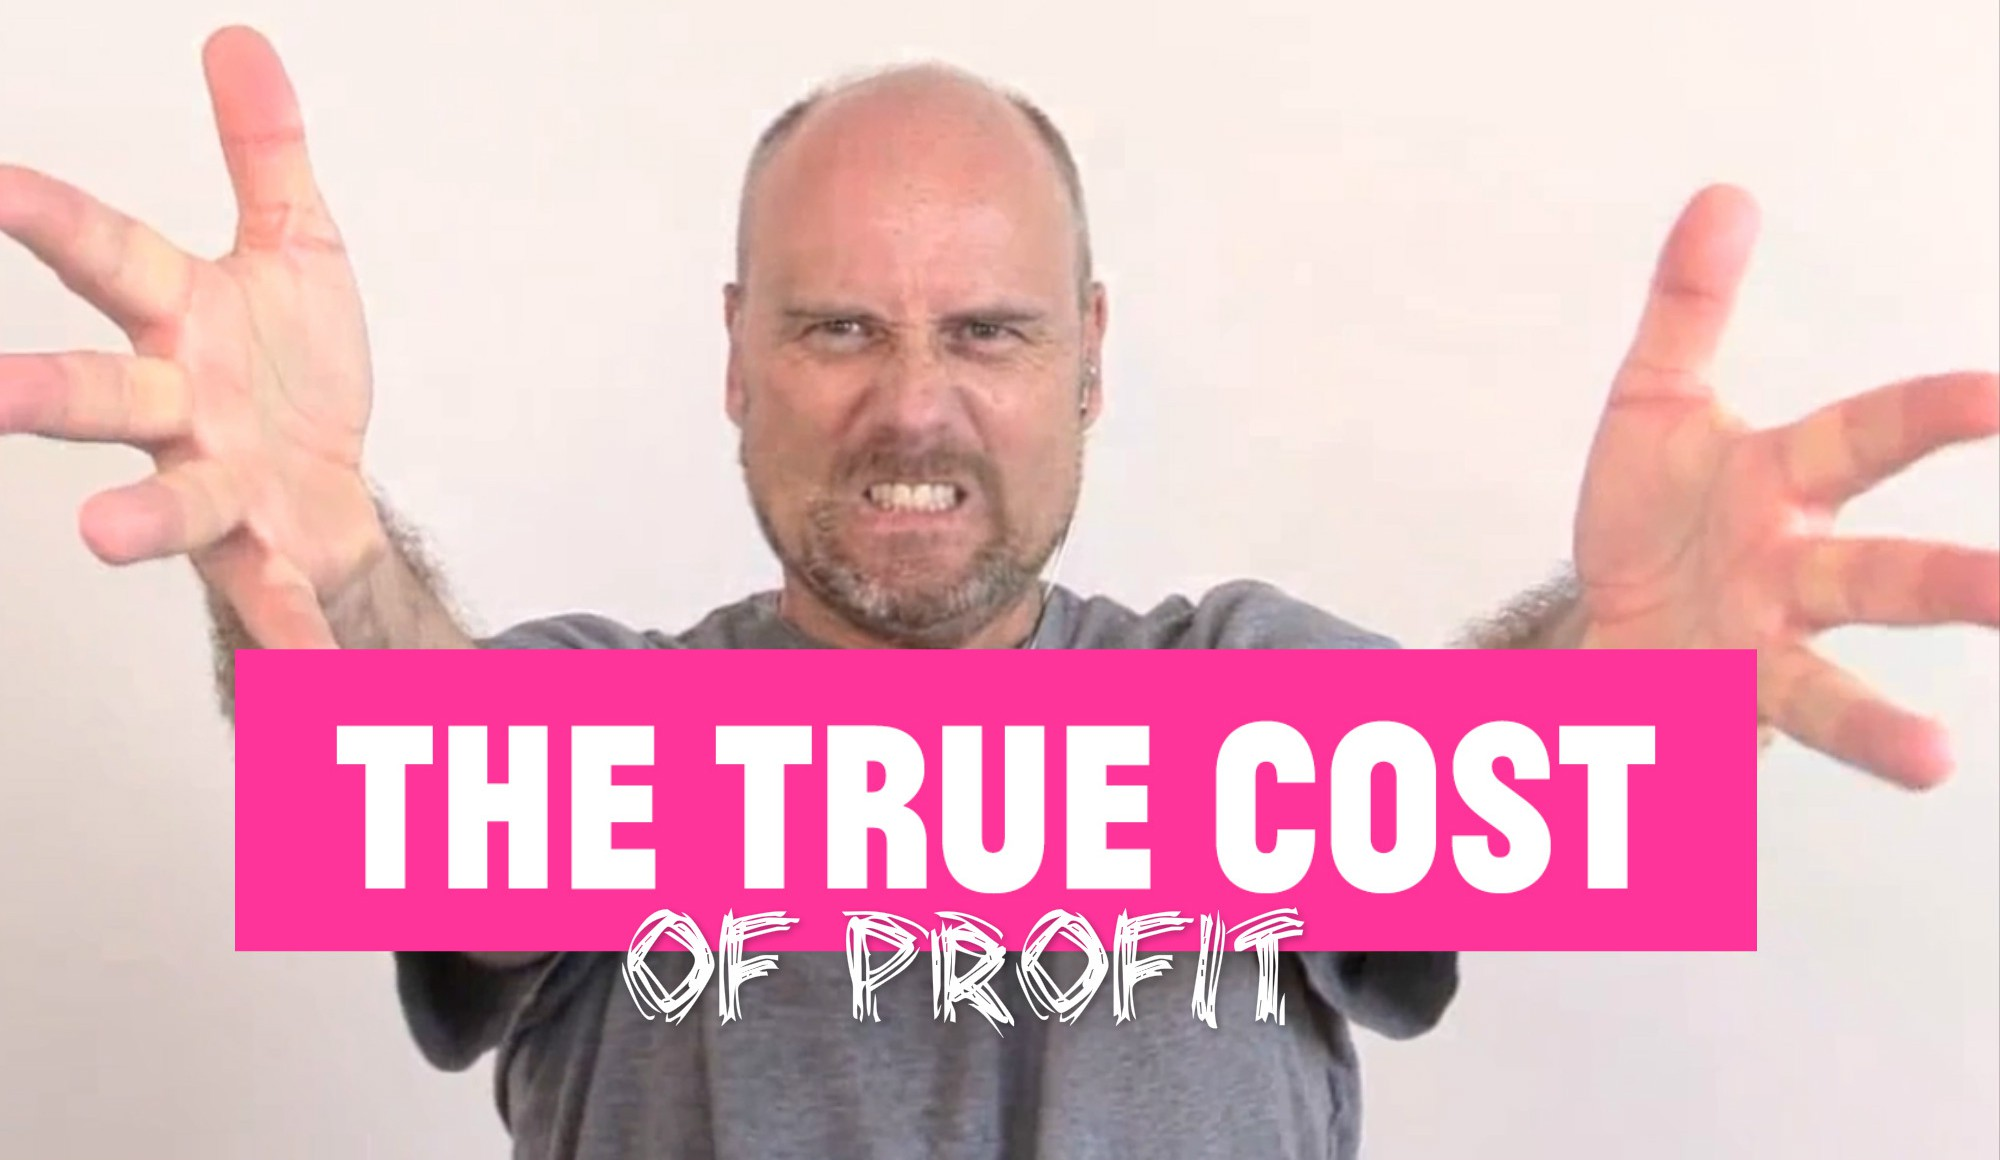 The True Cost of Profit